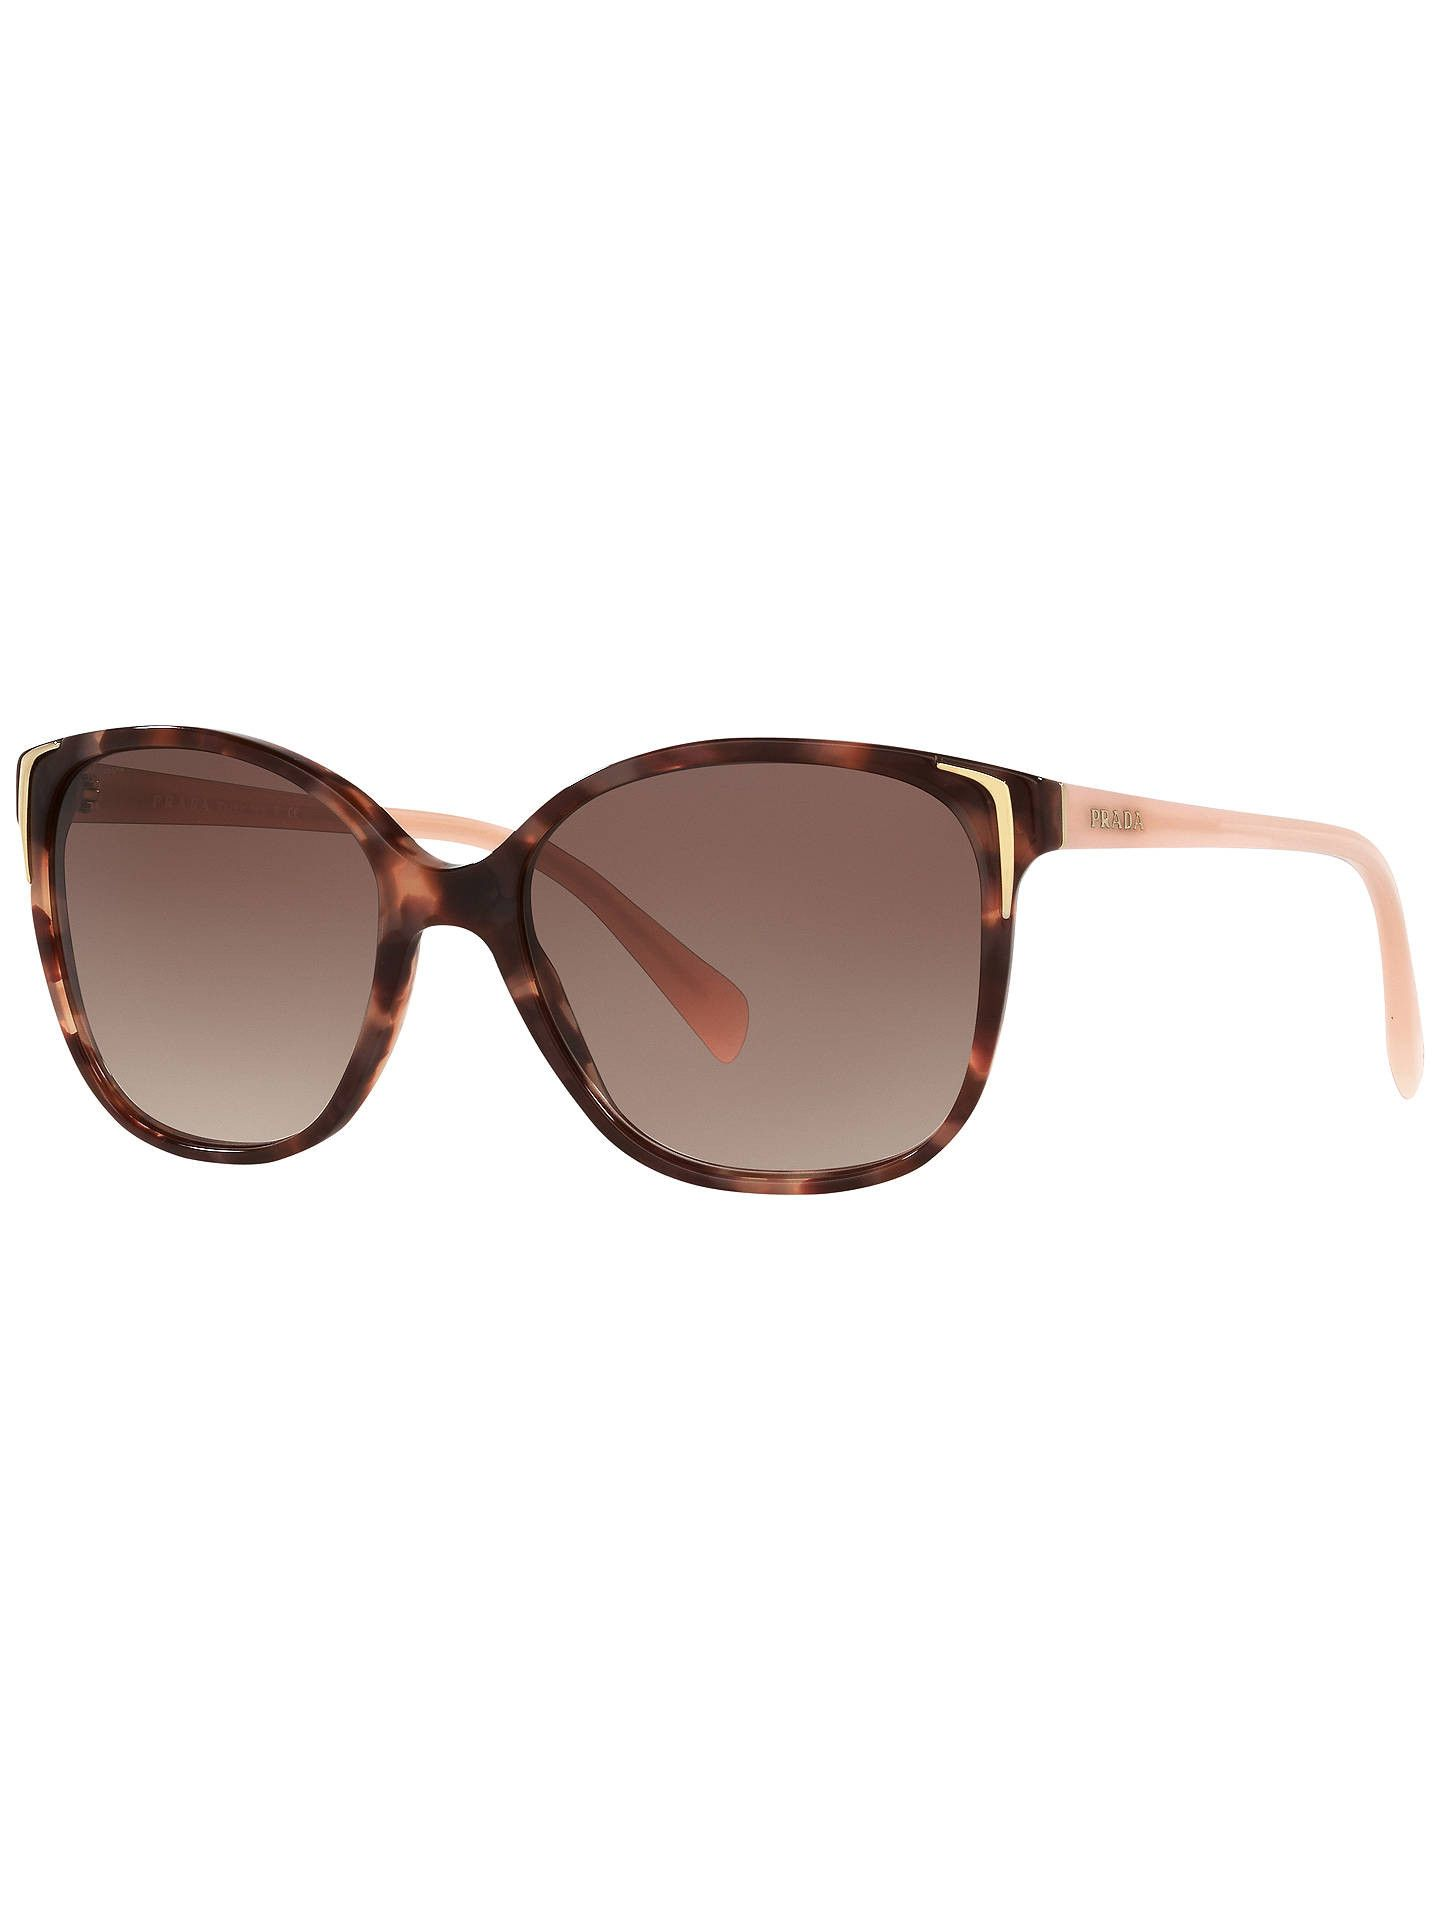 a109c2aa98 16 Amazing Prada tortoise Shell Sunglasses Smart Ideas - prada black tortoise  sunglasses